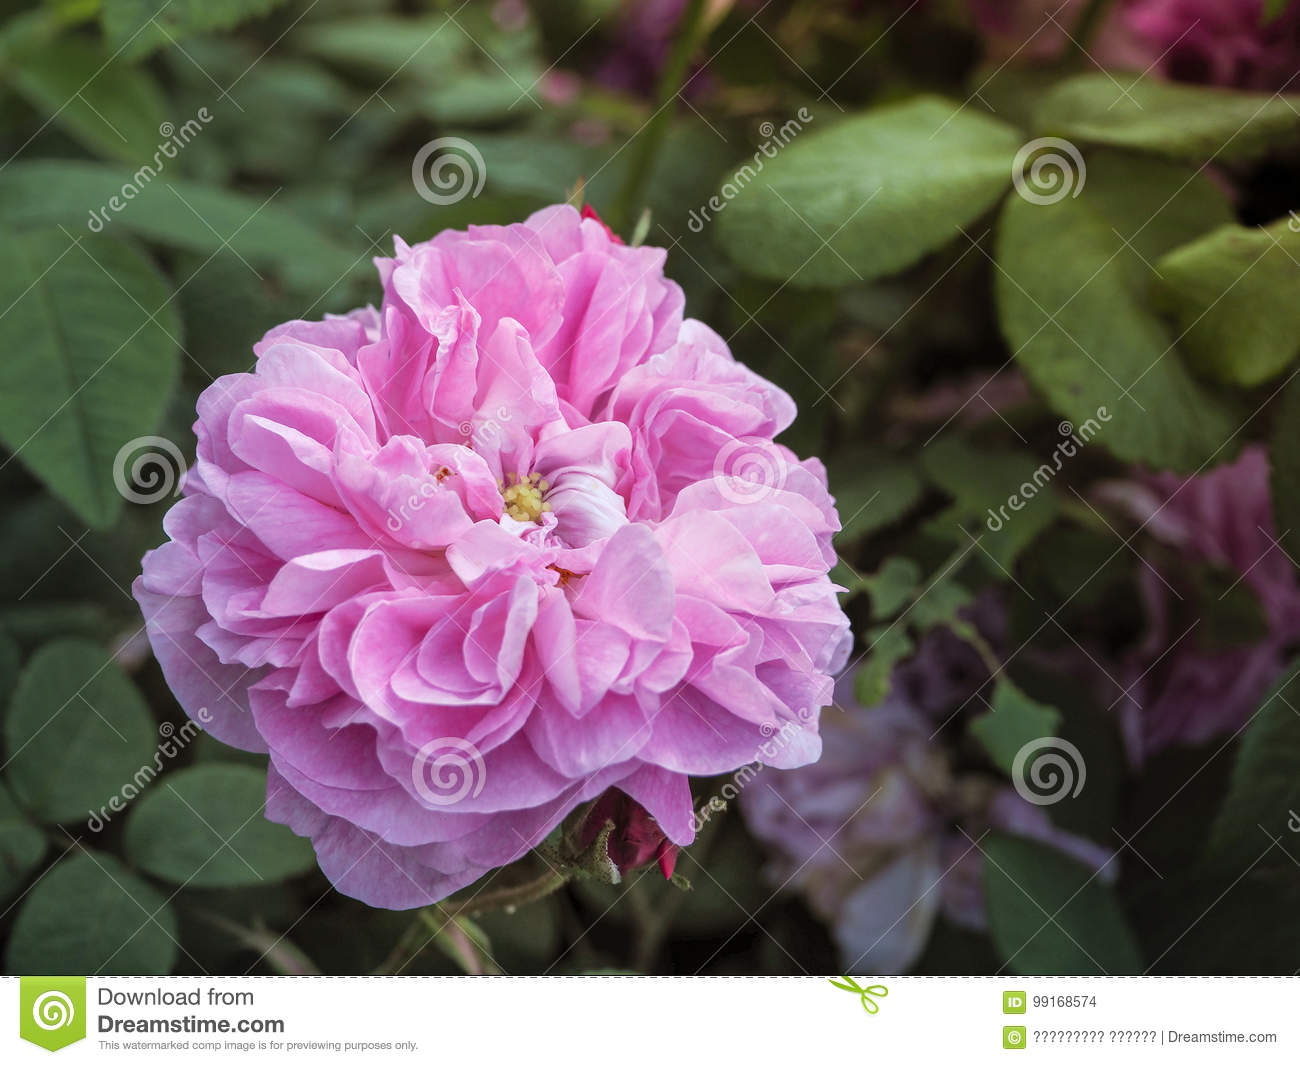 Varietal roses commercial cultivation of flowers for bouquets commercial cultivation of flowers for bouquets fragrant rose stock photo izmirmasajfo